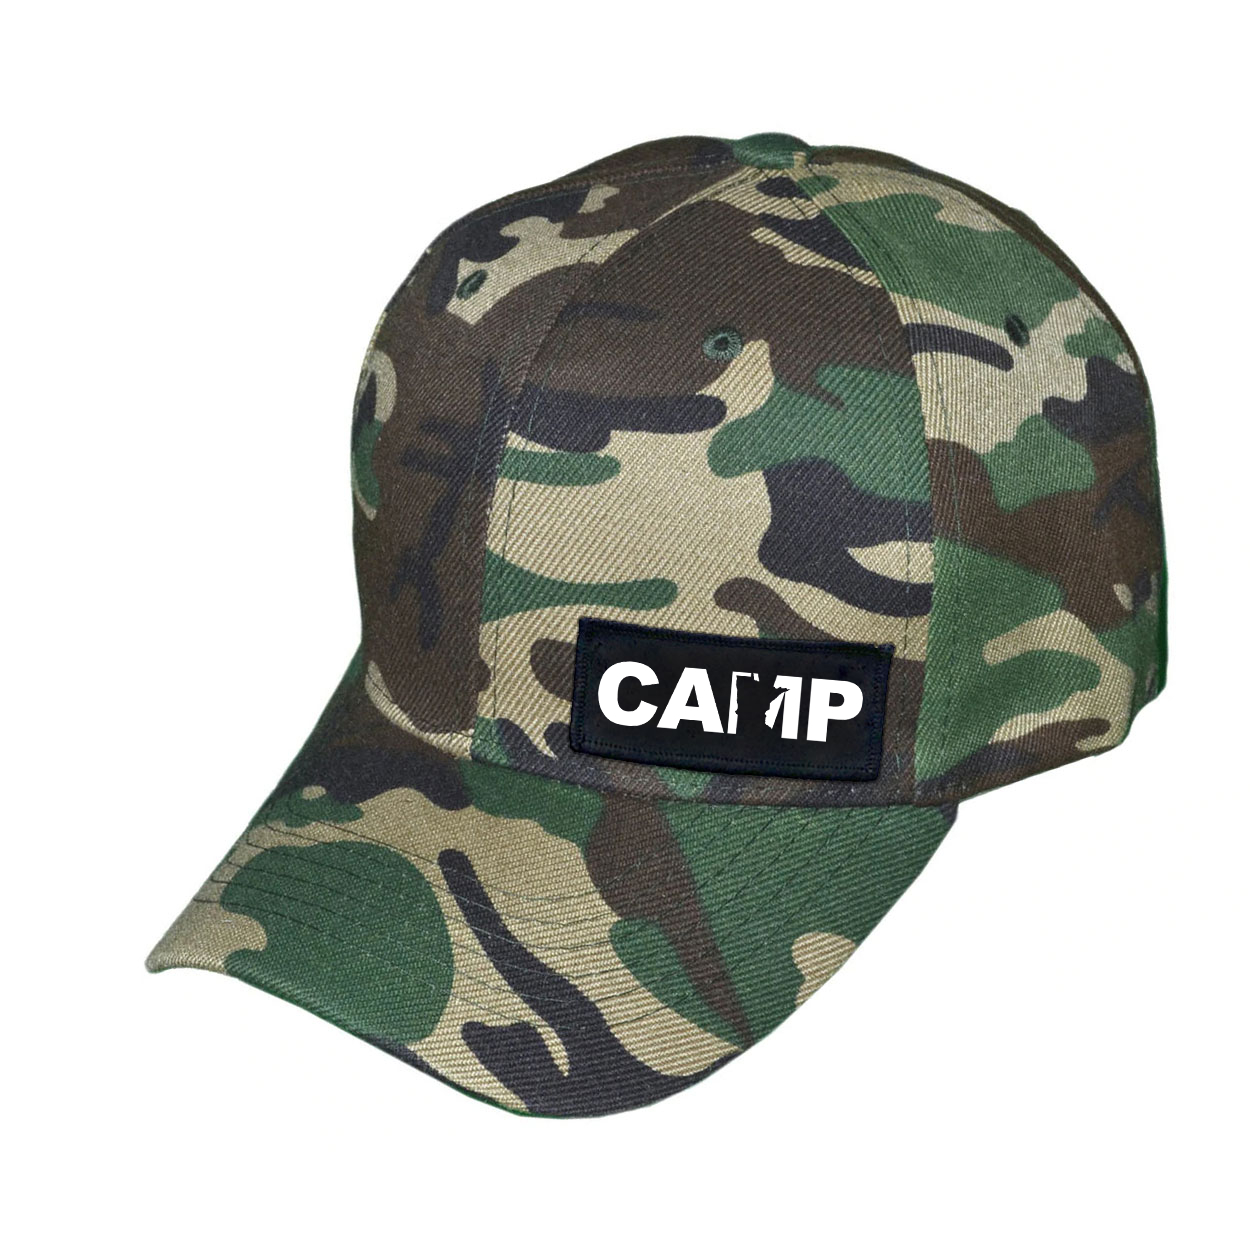 Camp Minnesota Night Out Woven Patch Hat Camo (White Logo)